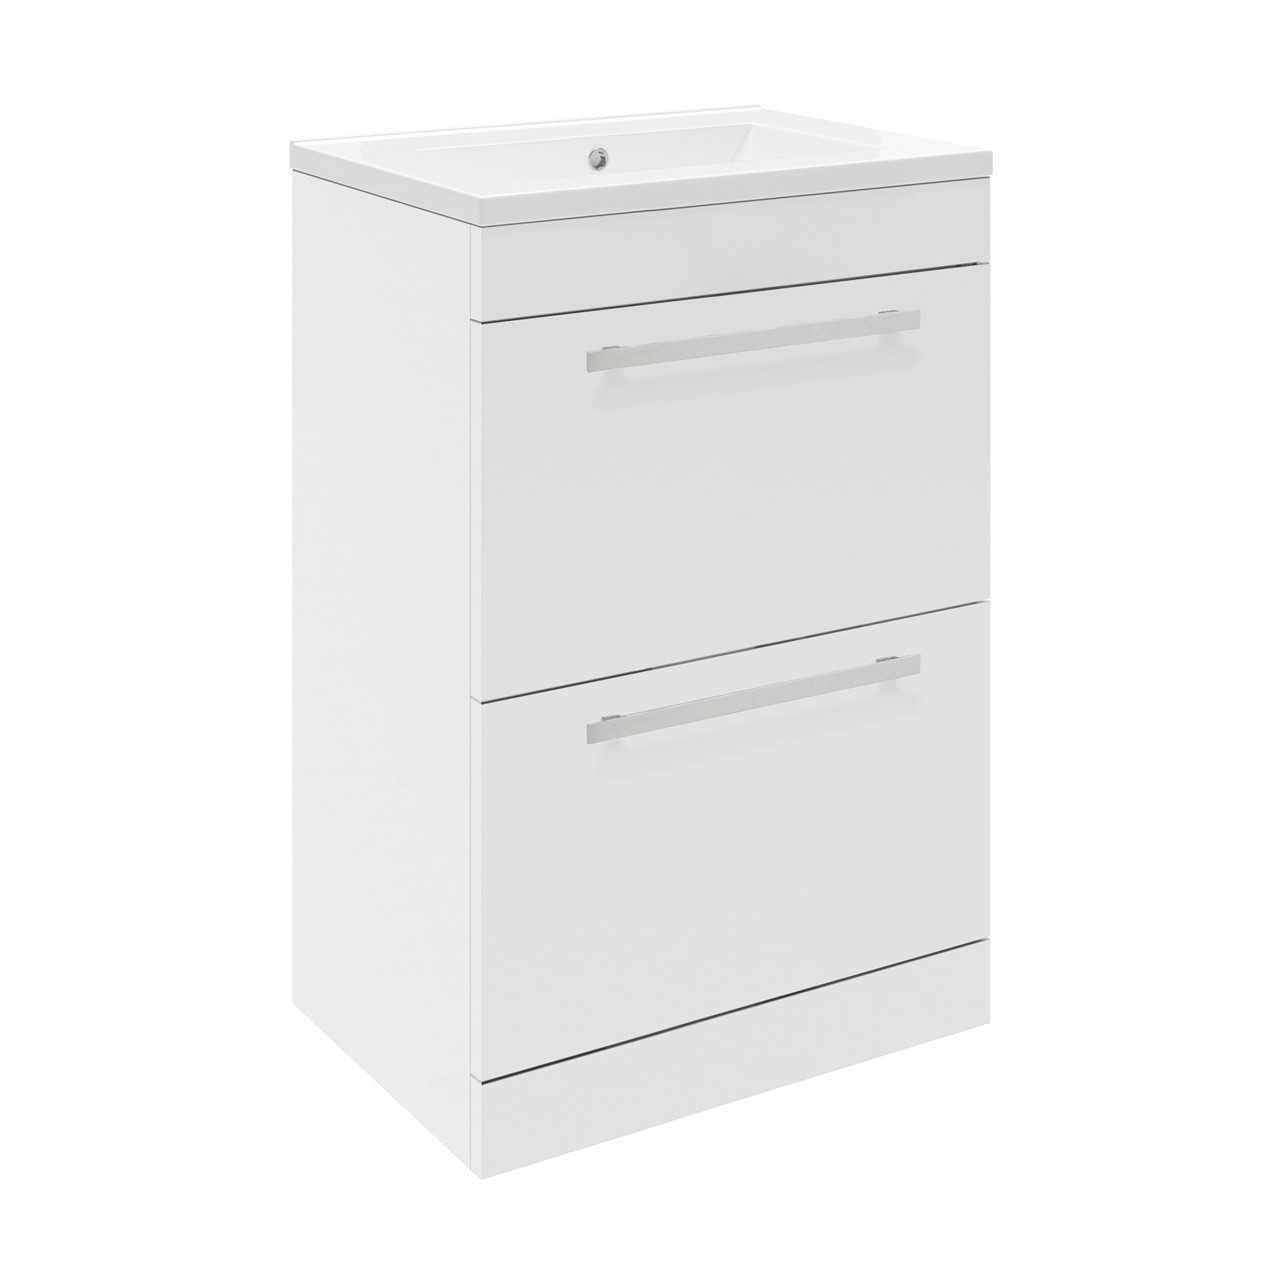 Premier Design Gloss White Floor Standing 500mm Cabinet 40mm Profile Basin Cab434 Nvm012